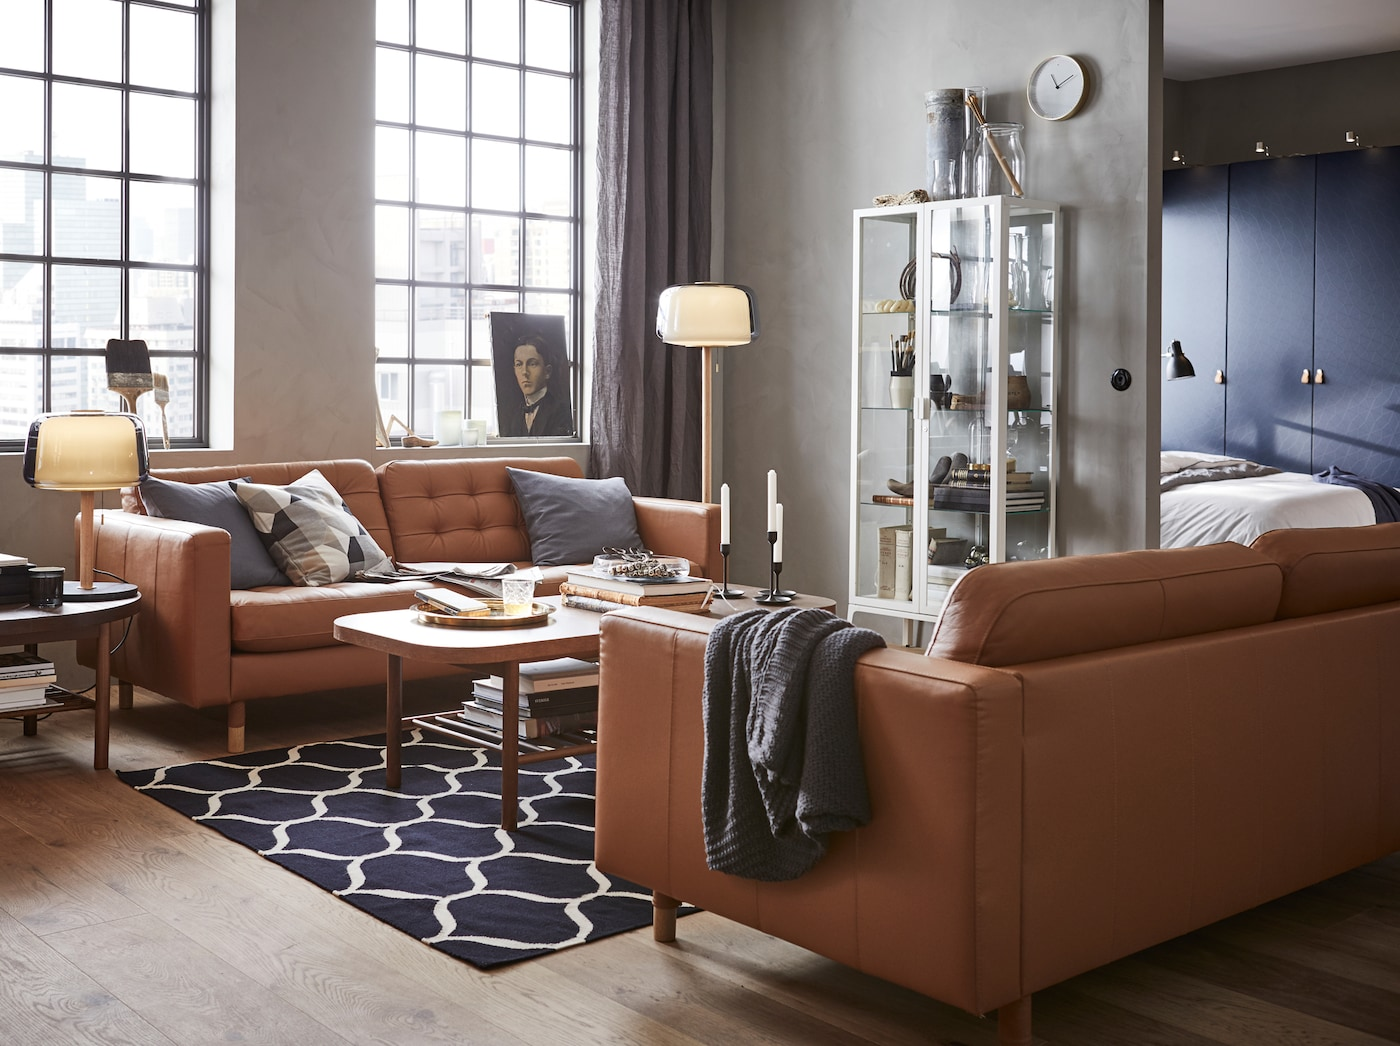 Living Room Inspiration To Decorate